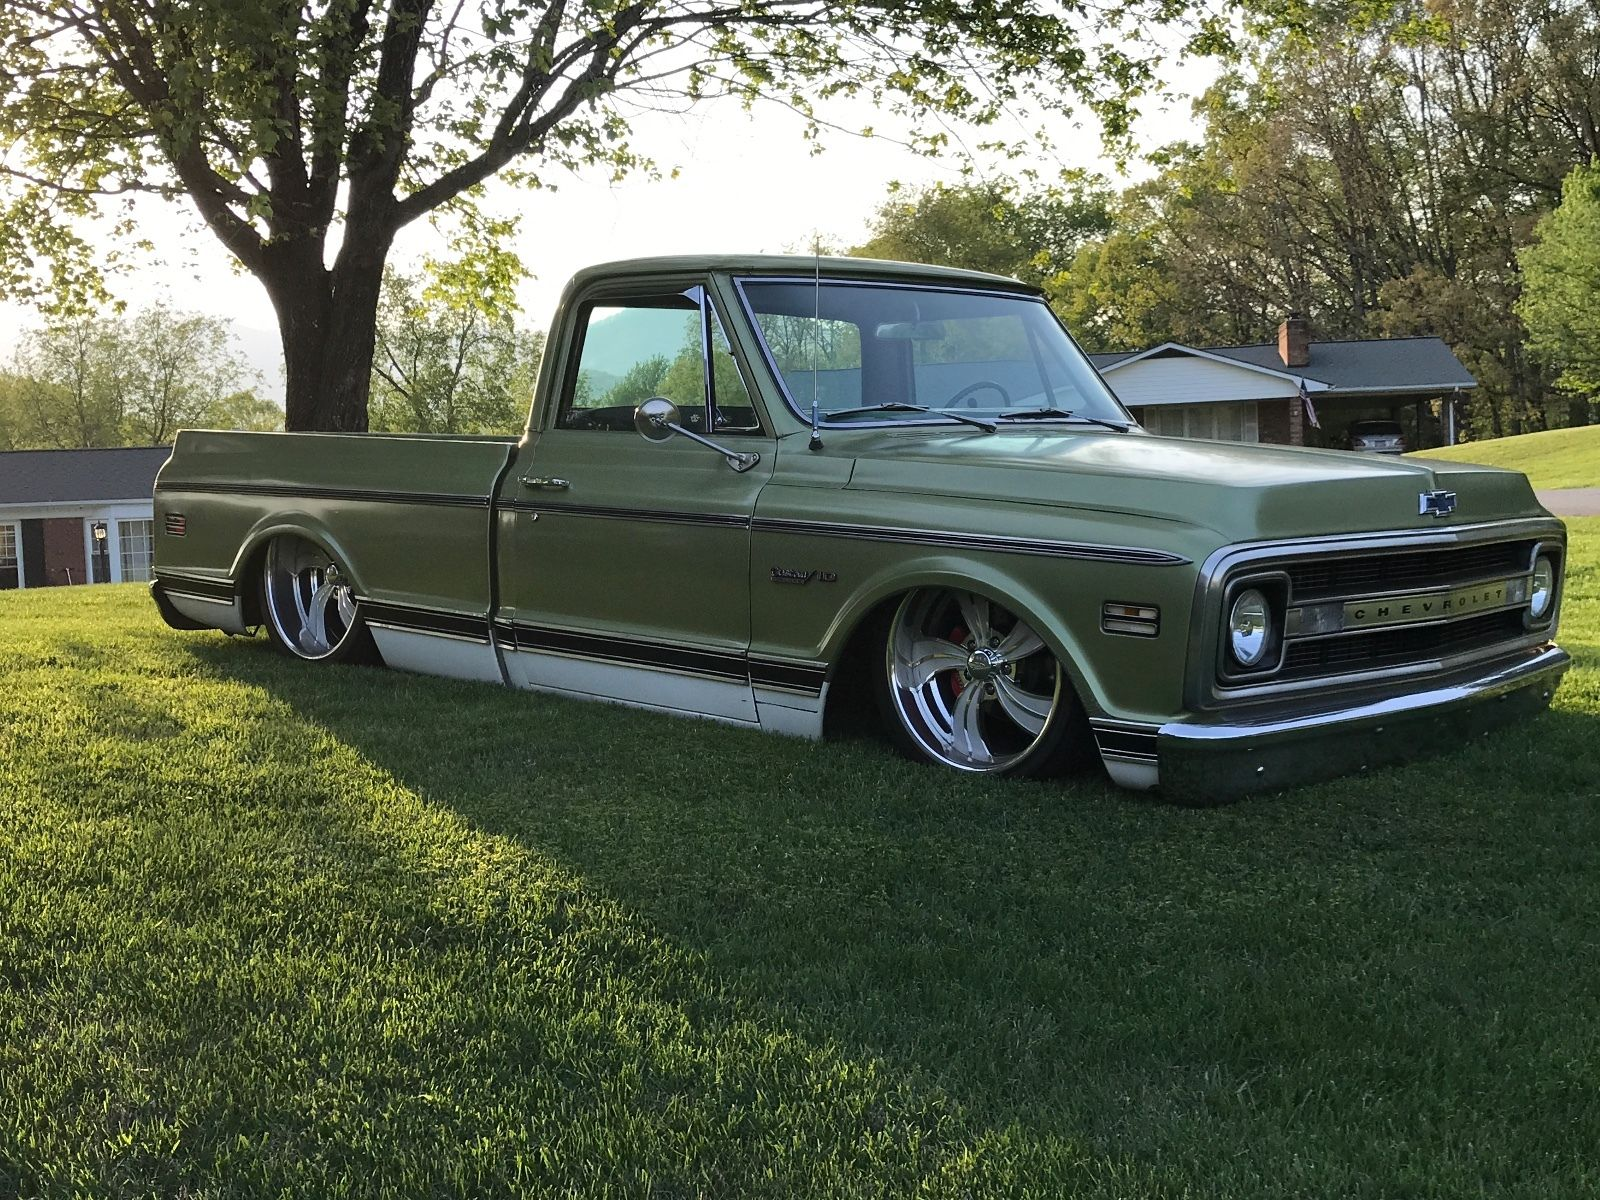 Absolutely Stunning Chevrolet C Custom Truck For Sale on Rack And Pinion Steering Stops